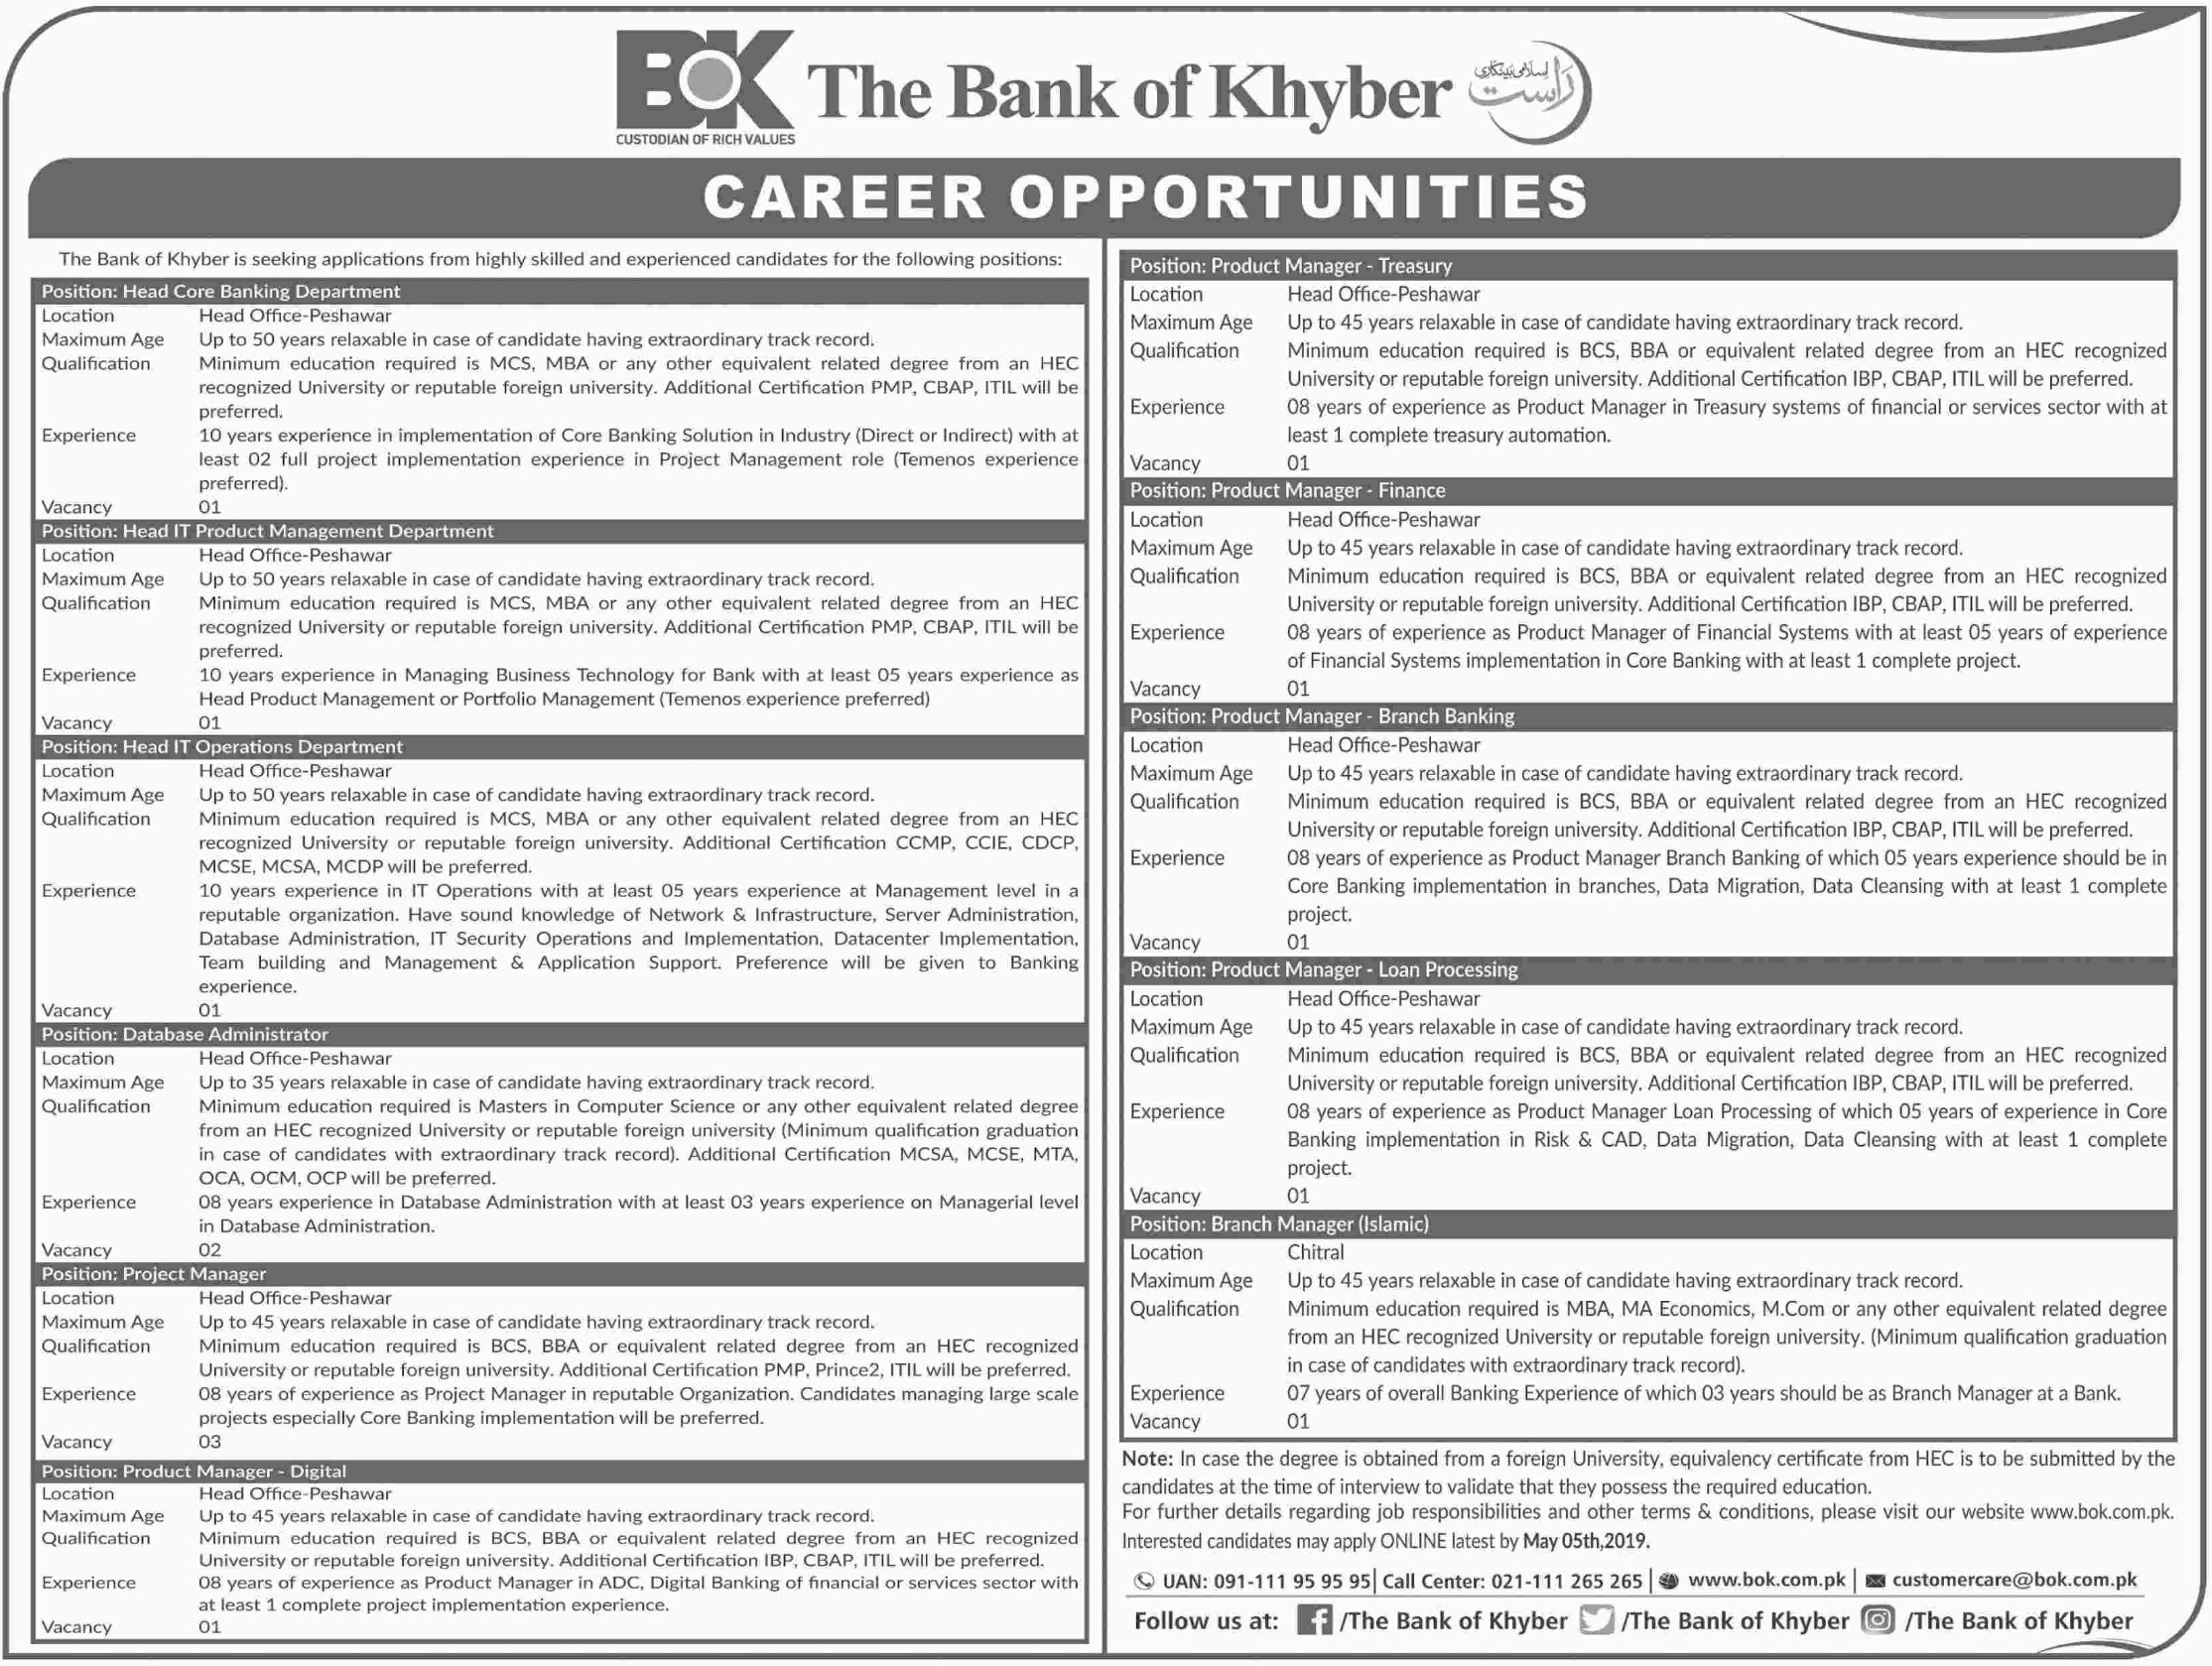 Bank of Khyber Jobs 2019 Apply Online through BOK Website